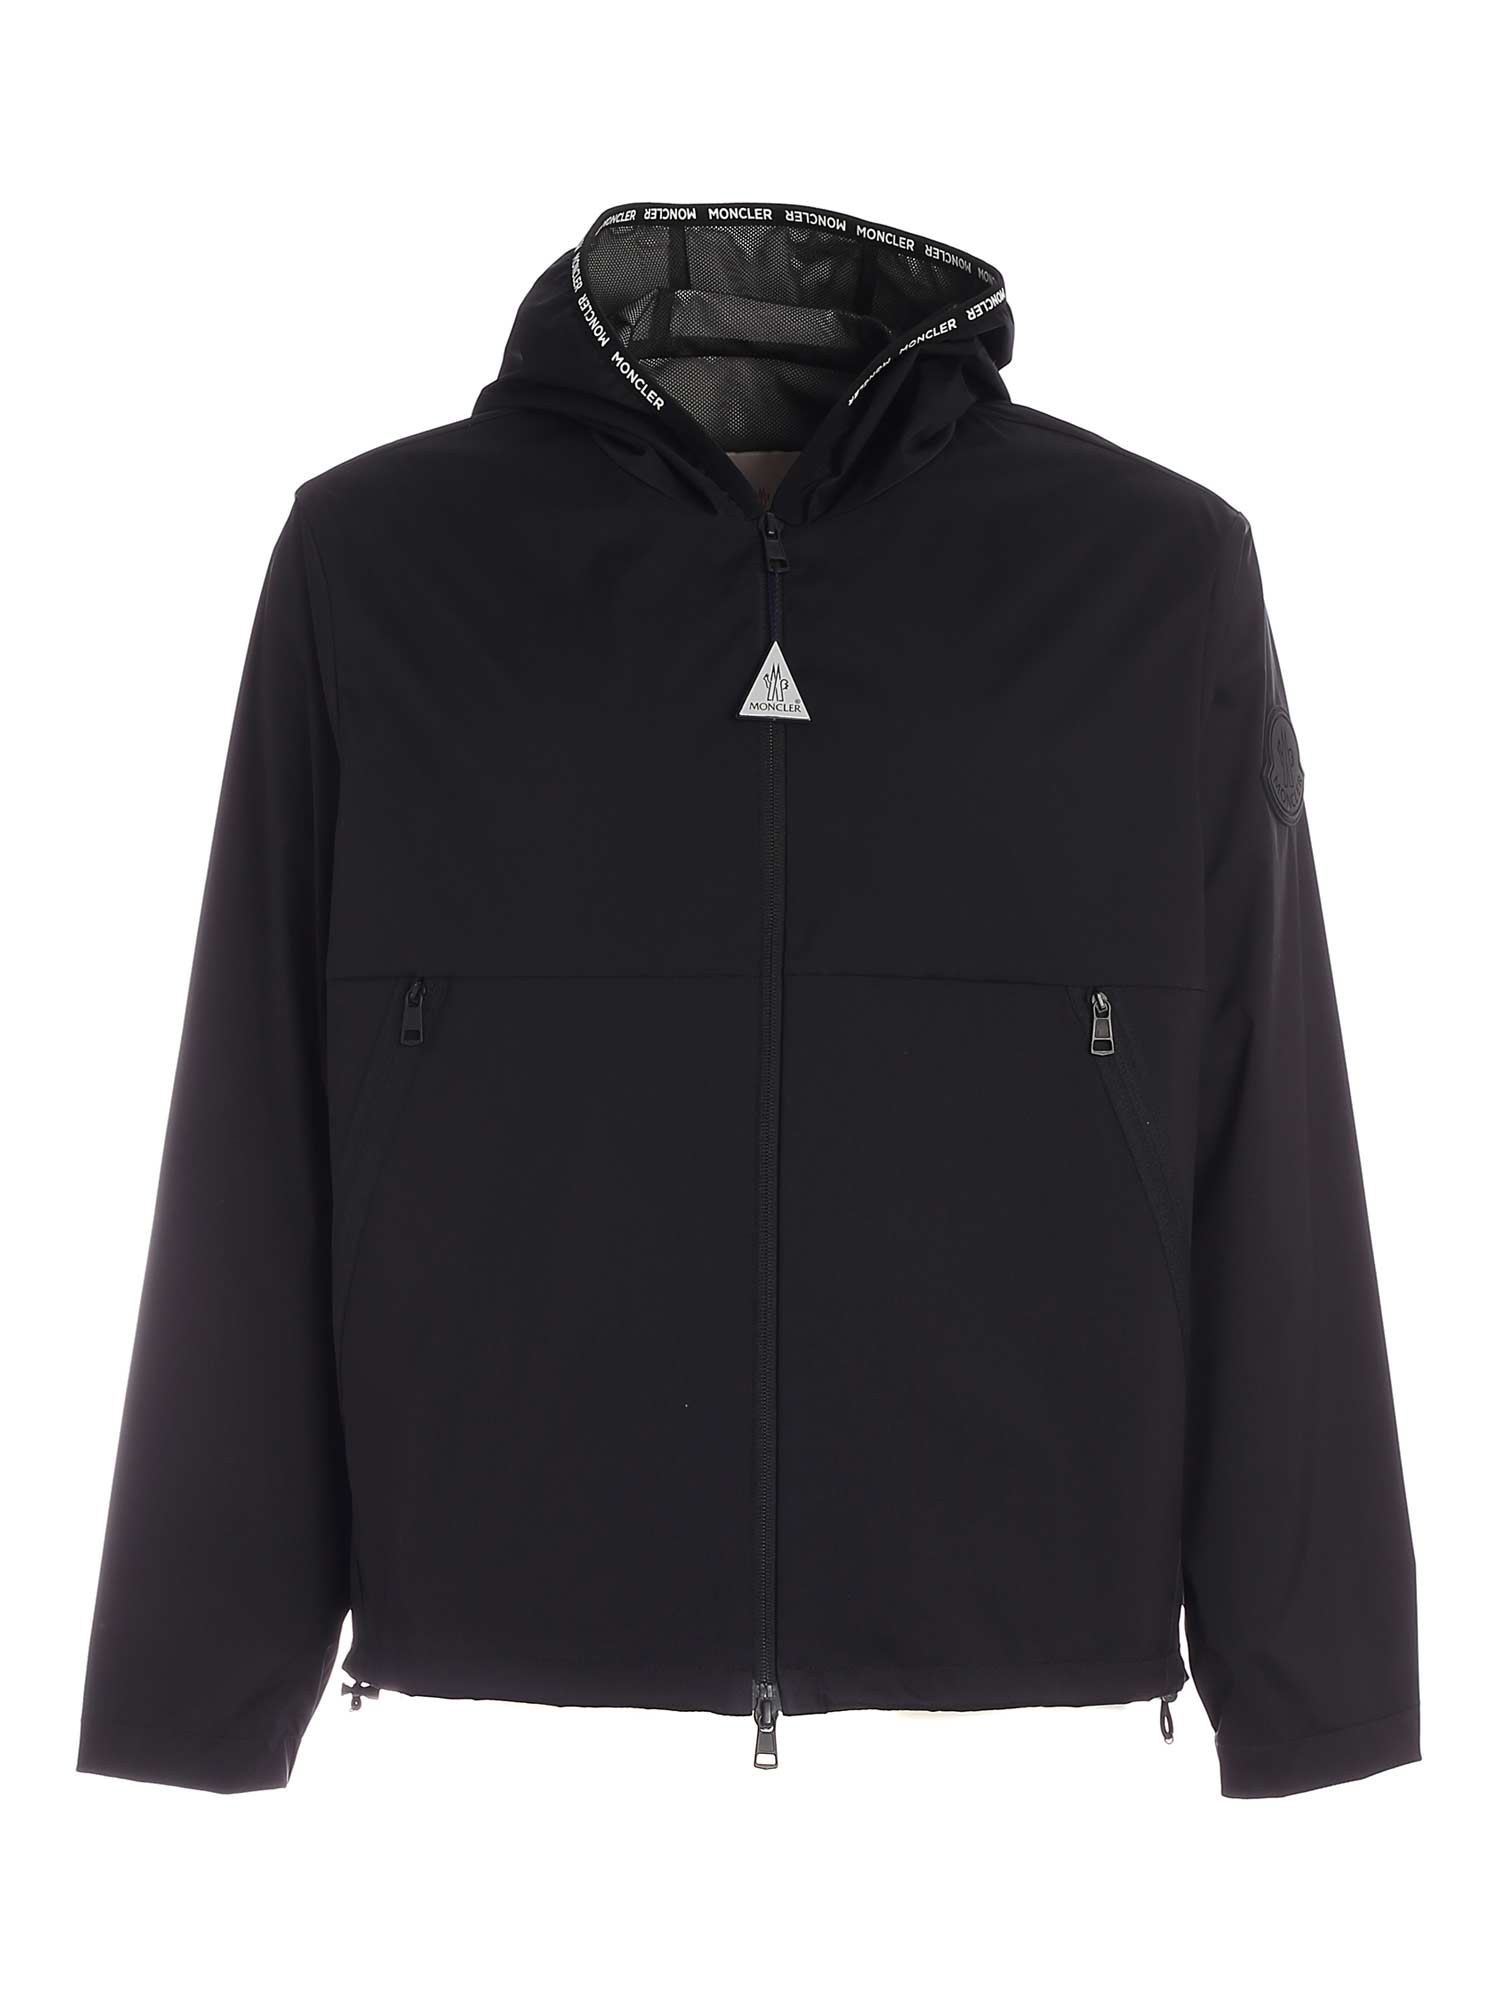 Moncler CHARDON JACKET IN BLACK